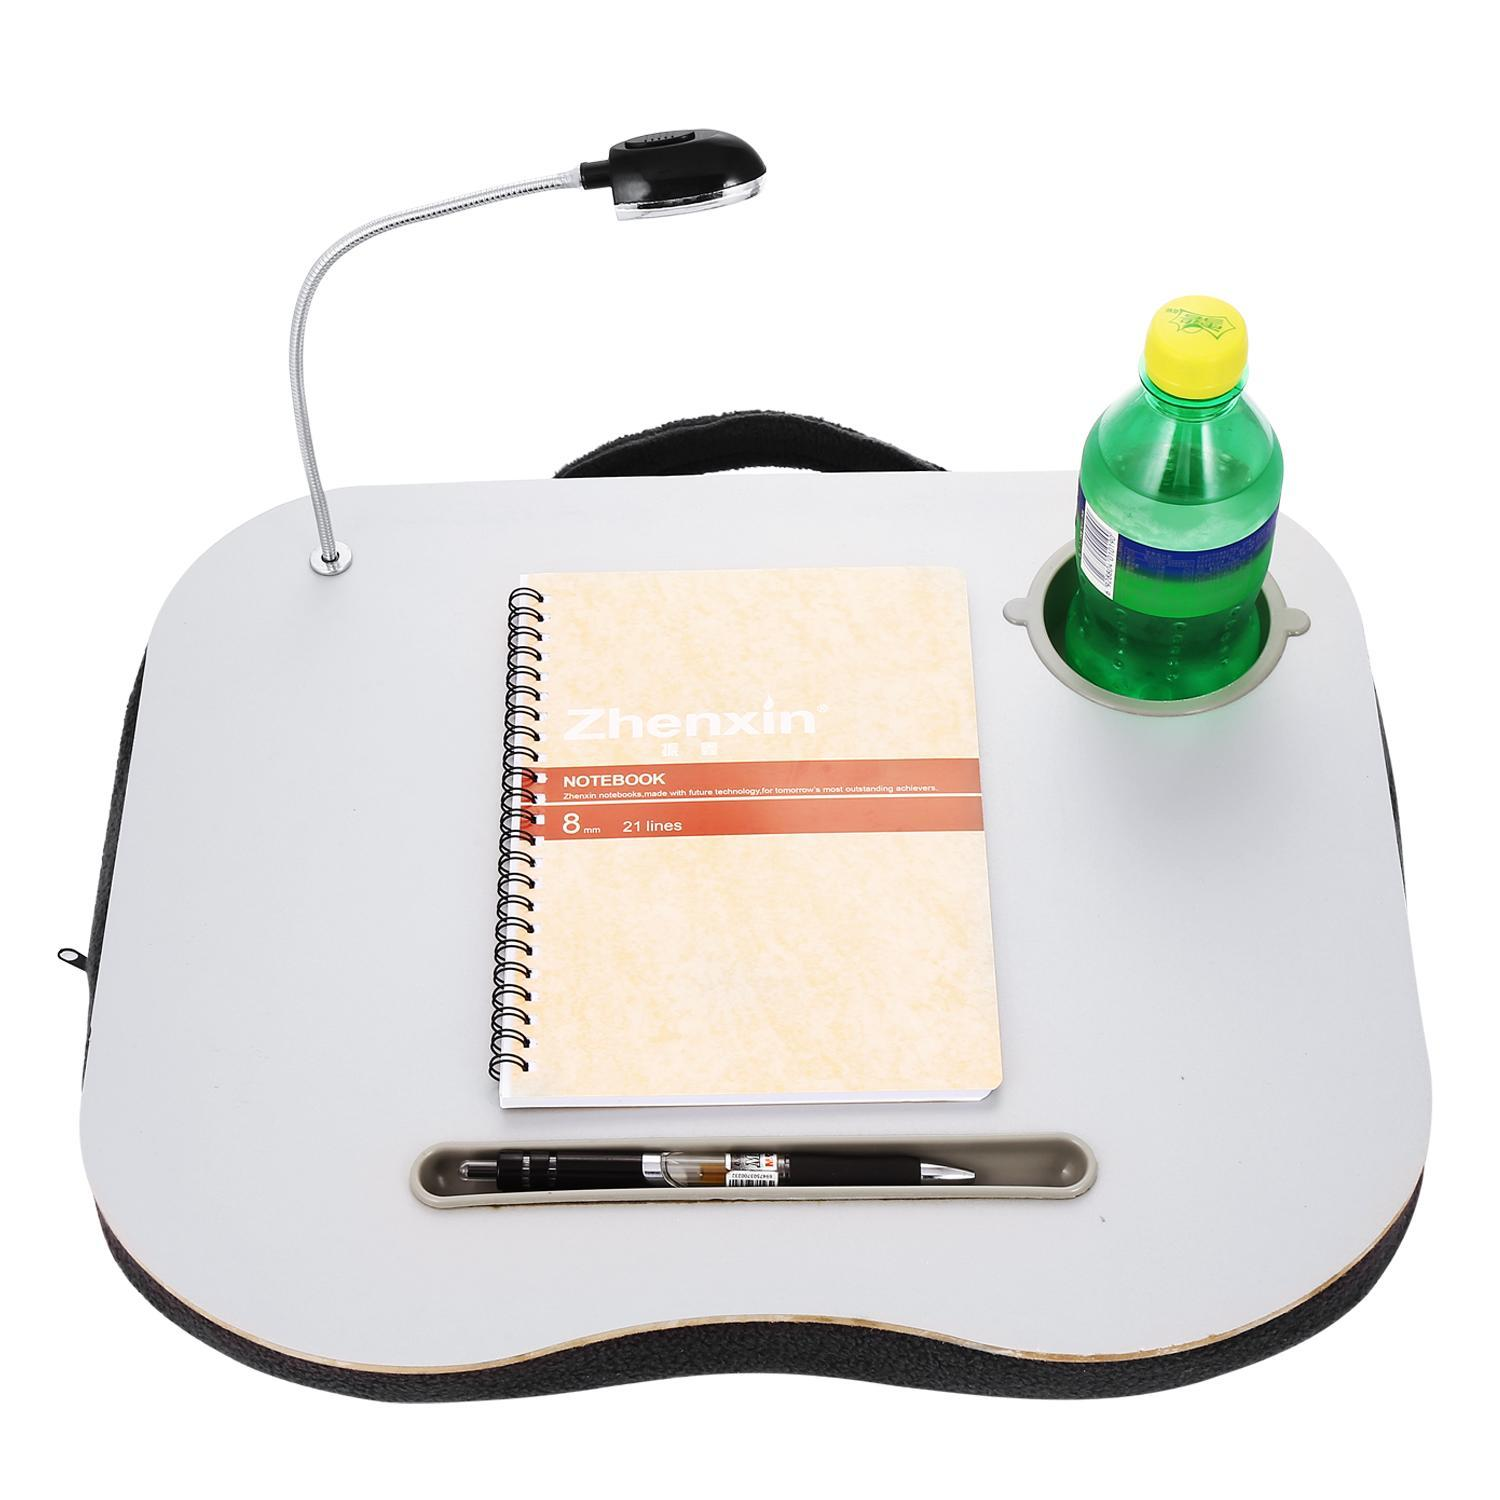 Portable Laptop Desk, With Foam Cushion LED Desk Light and Cup Holder for Bed&Lap SPTE